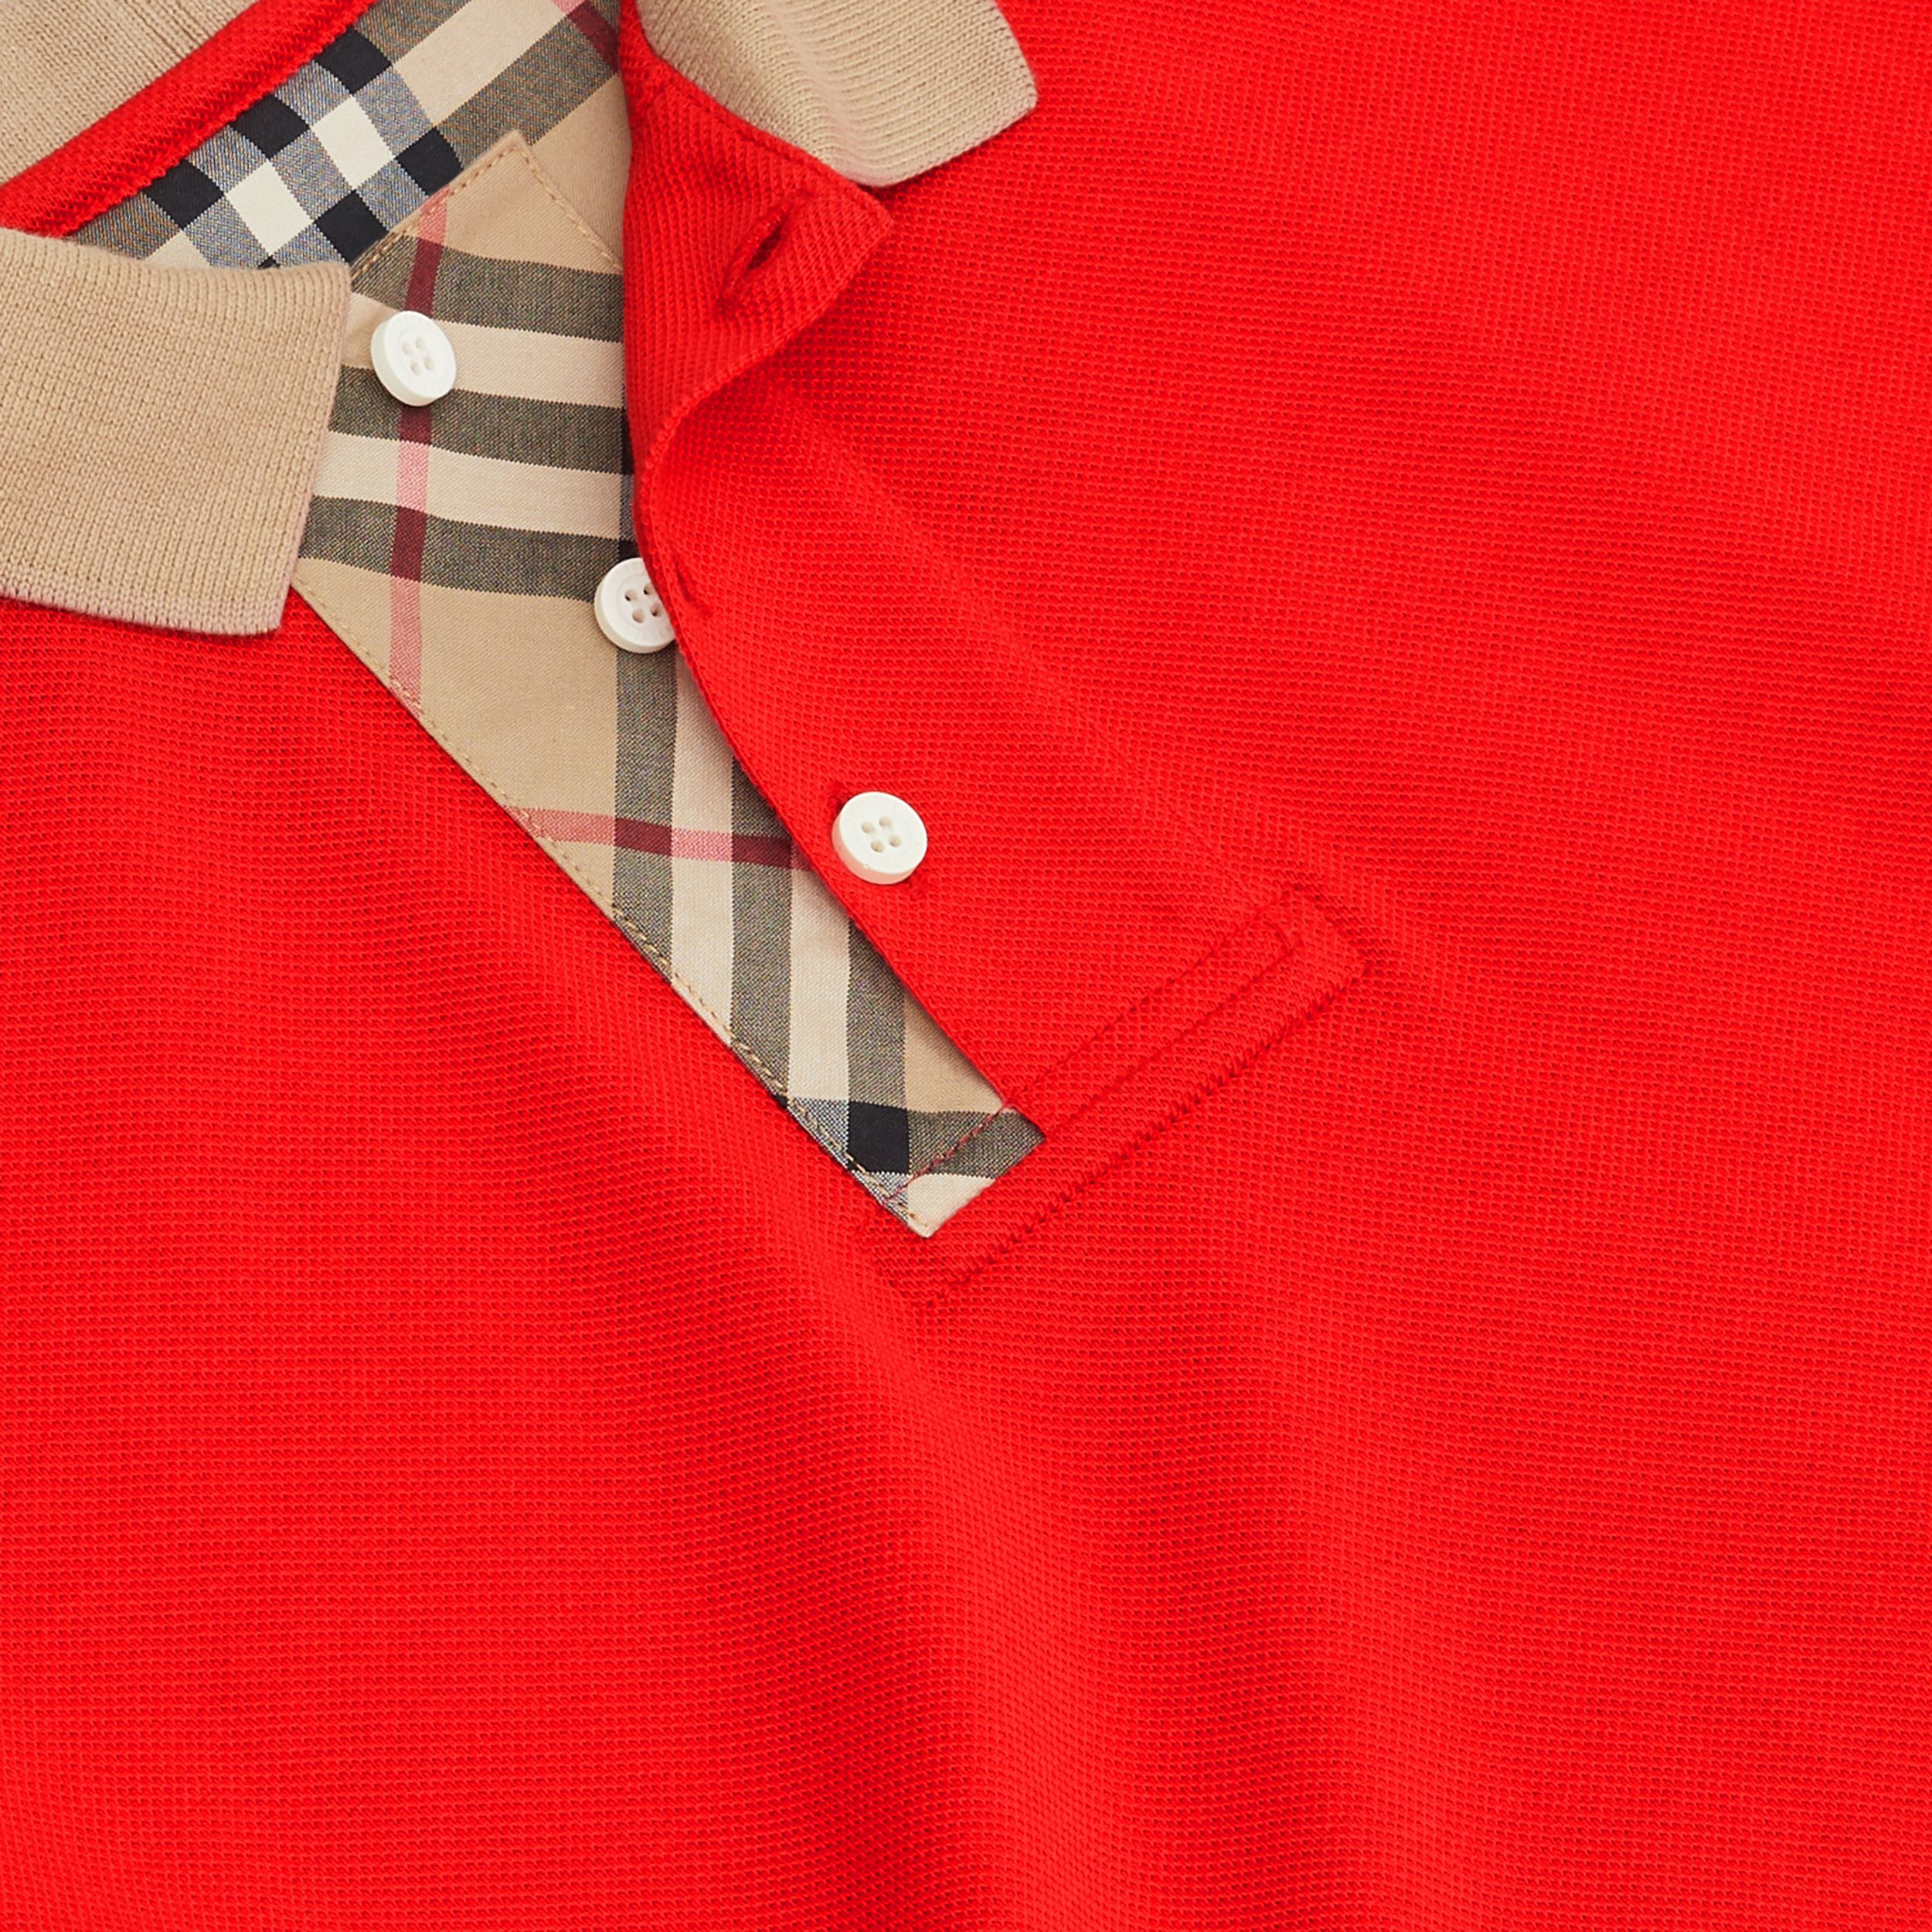 Vintage Check Trim Cotton Polo Shirt in Bright Red | Burberry - 2